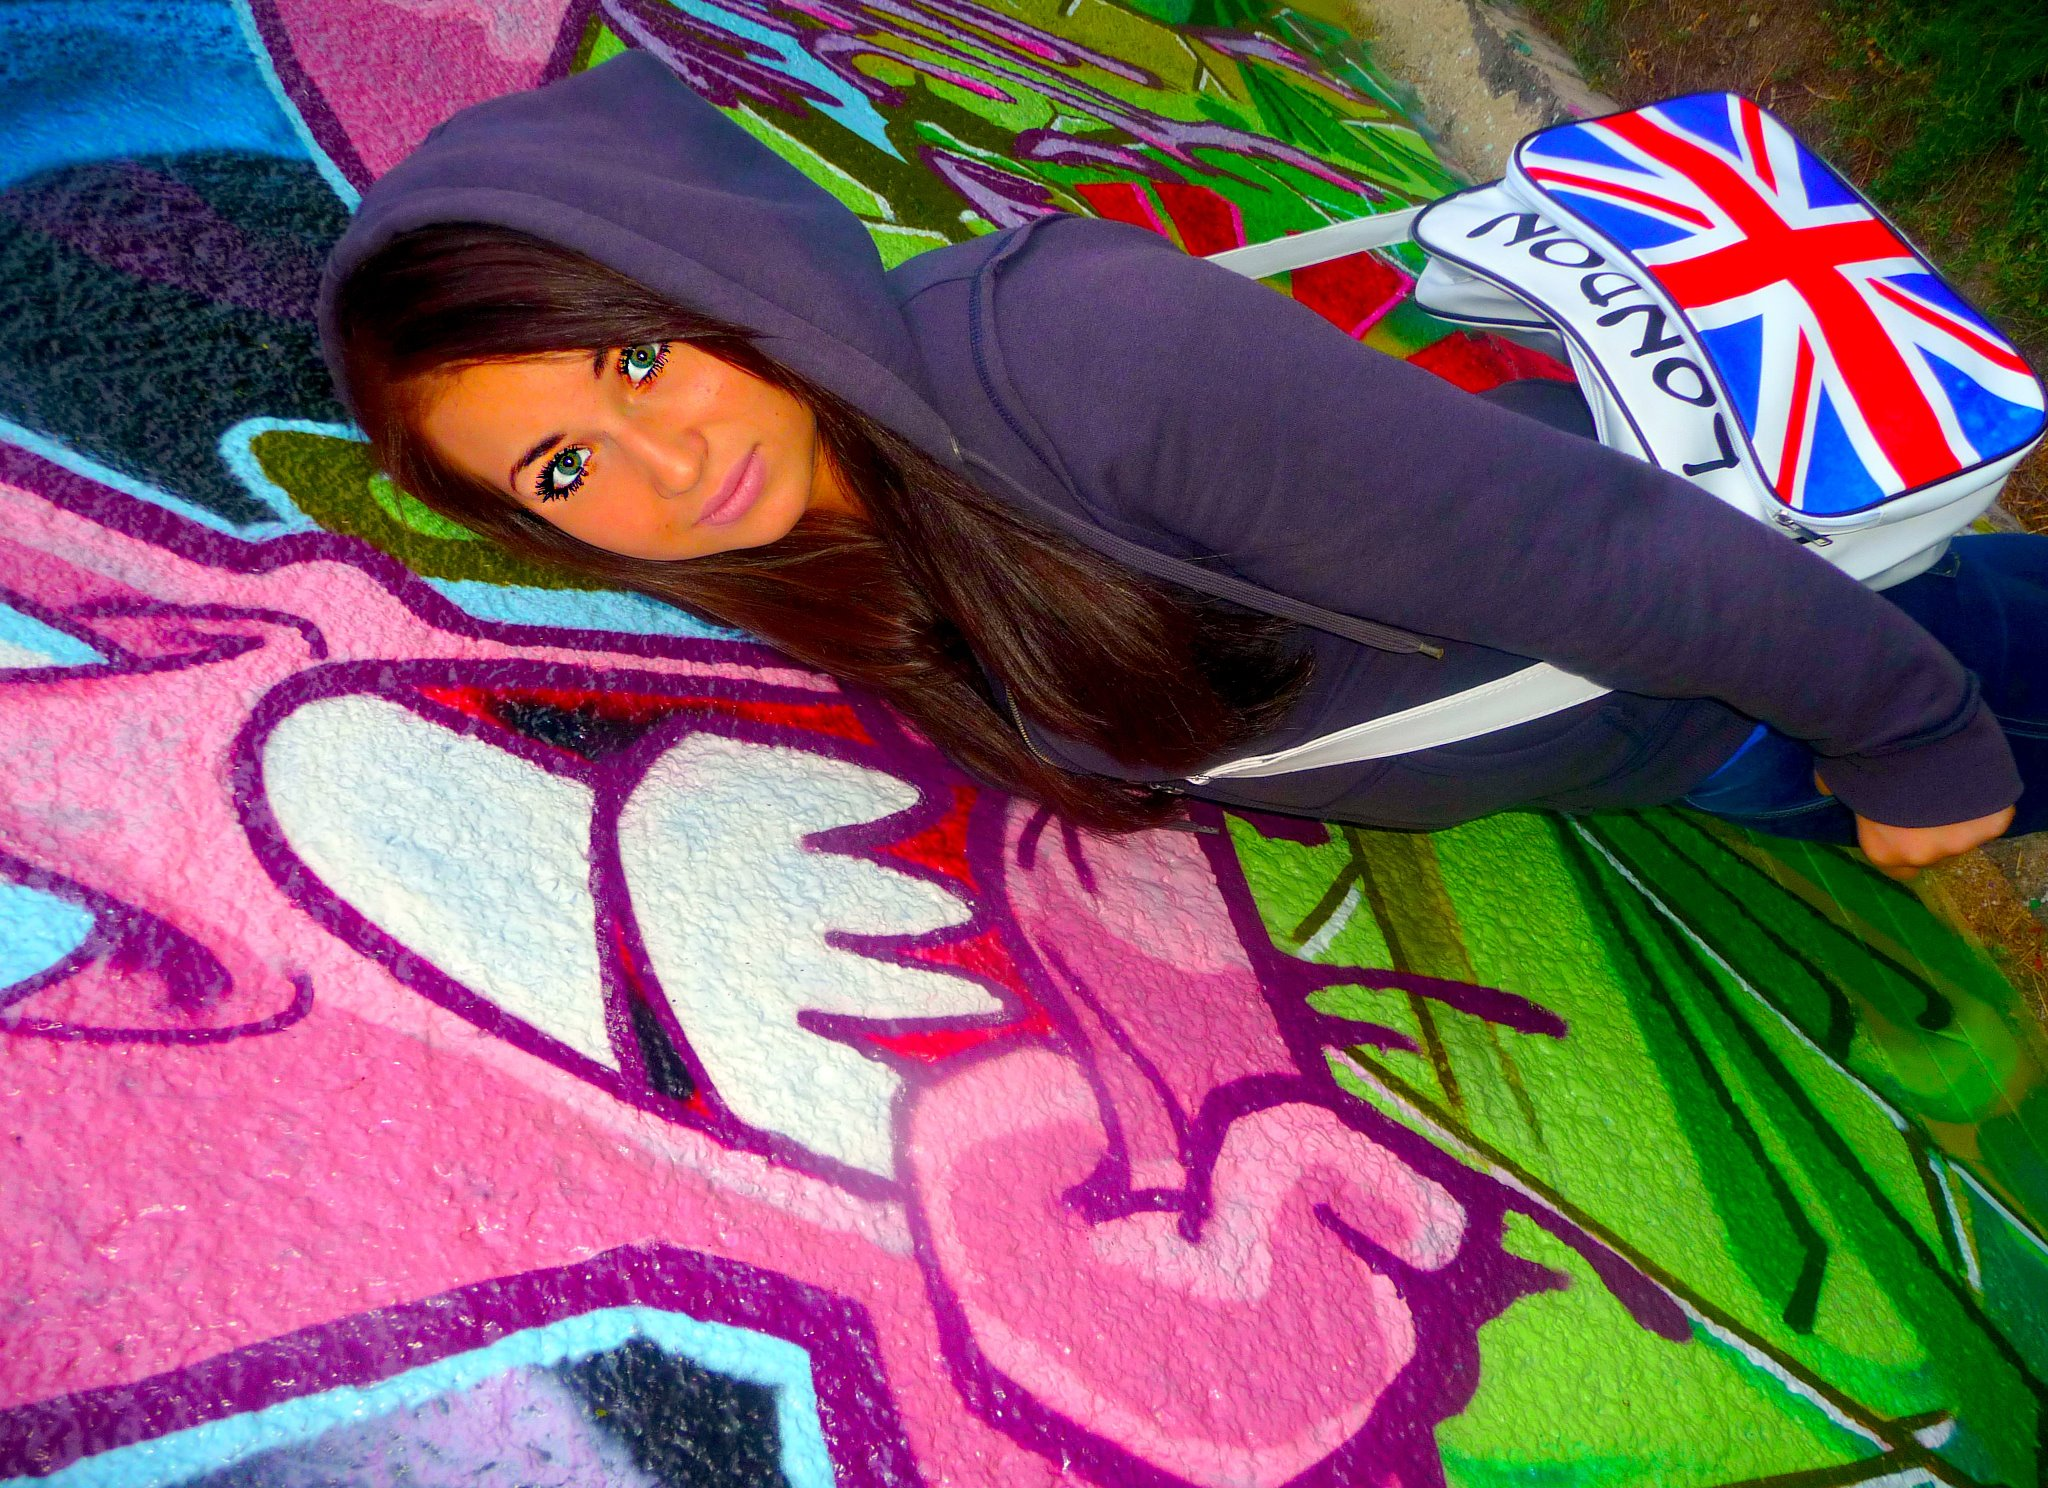 Graffiti Wallpaper For Girls 17